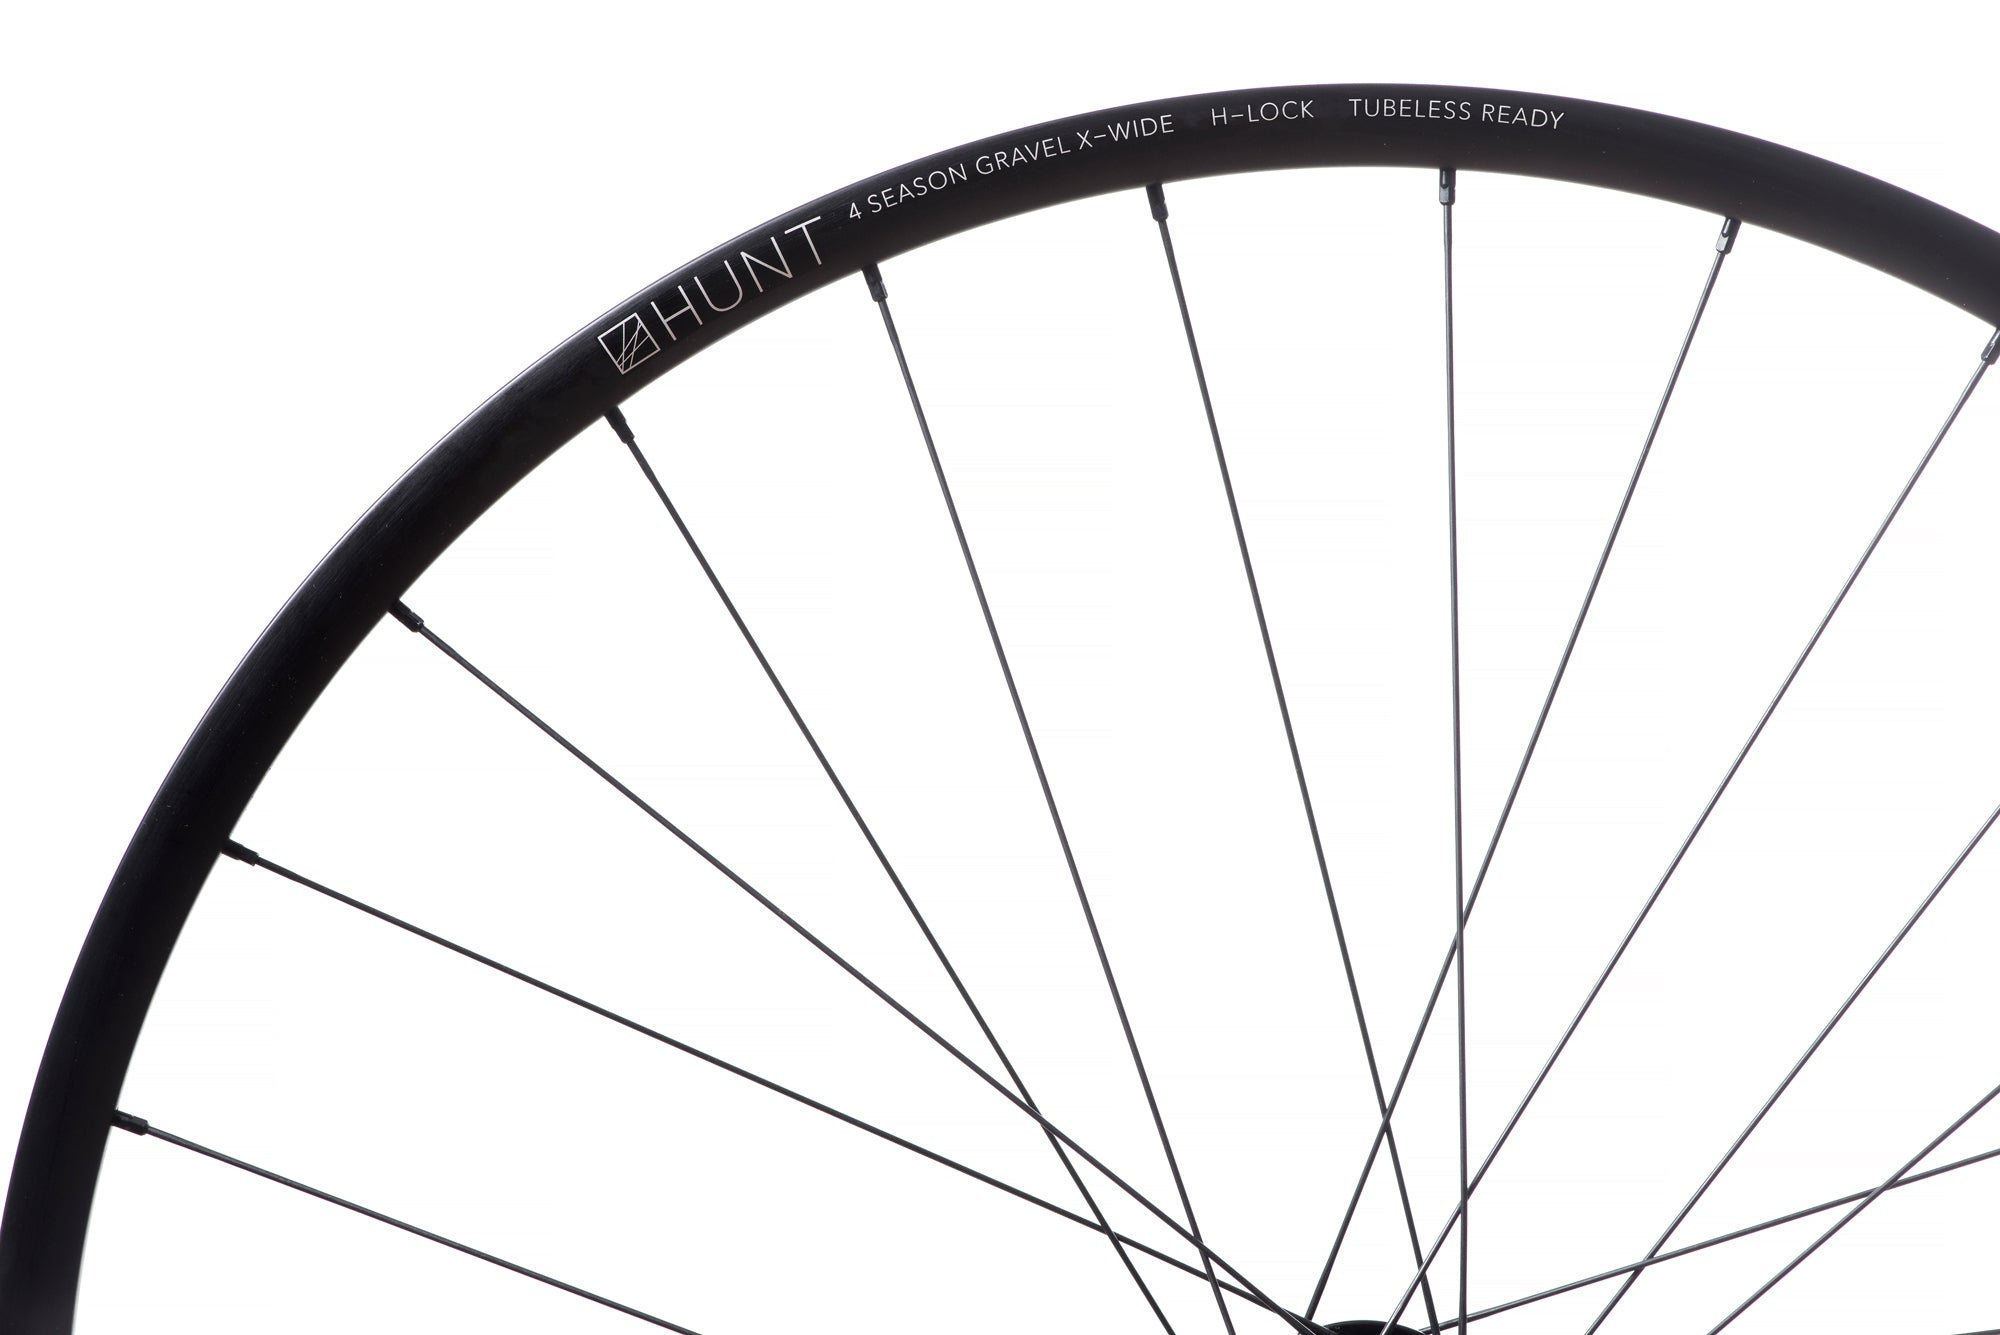 <h1>Spokes</h1><i>We chose the top-of-the-range Pillar Spoke Re-enforcement PSR XTRA models. These butted blade aero spokes are lighter and provide a greater degree of elasticity to maintain tensions and add fatigue resistance. These PSR J-bend spokes feature the 2.2 width at the spoke head providing more material in this high stress area. The nipples come with a square head so you can achieve precise tensioning. Combining these components well is key, which is why all HUNT wheels are hand-built.</i>